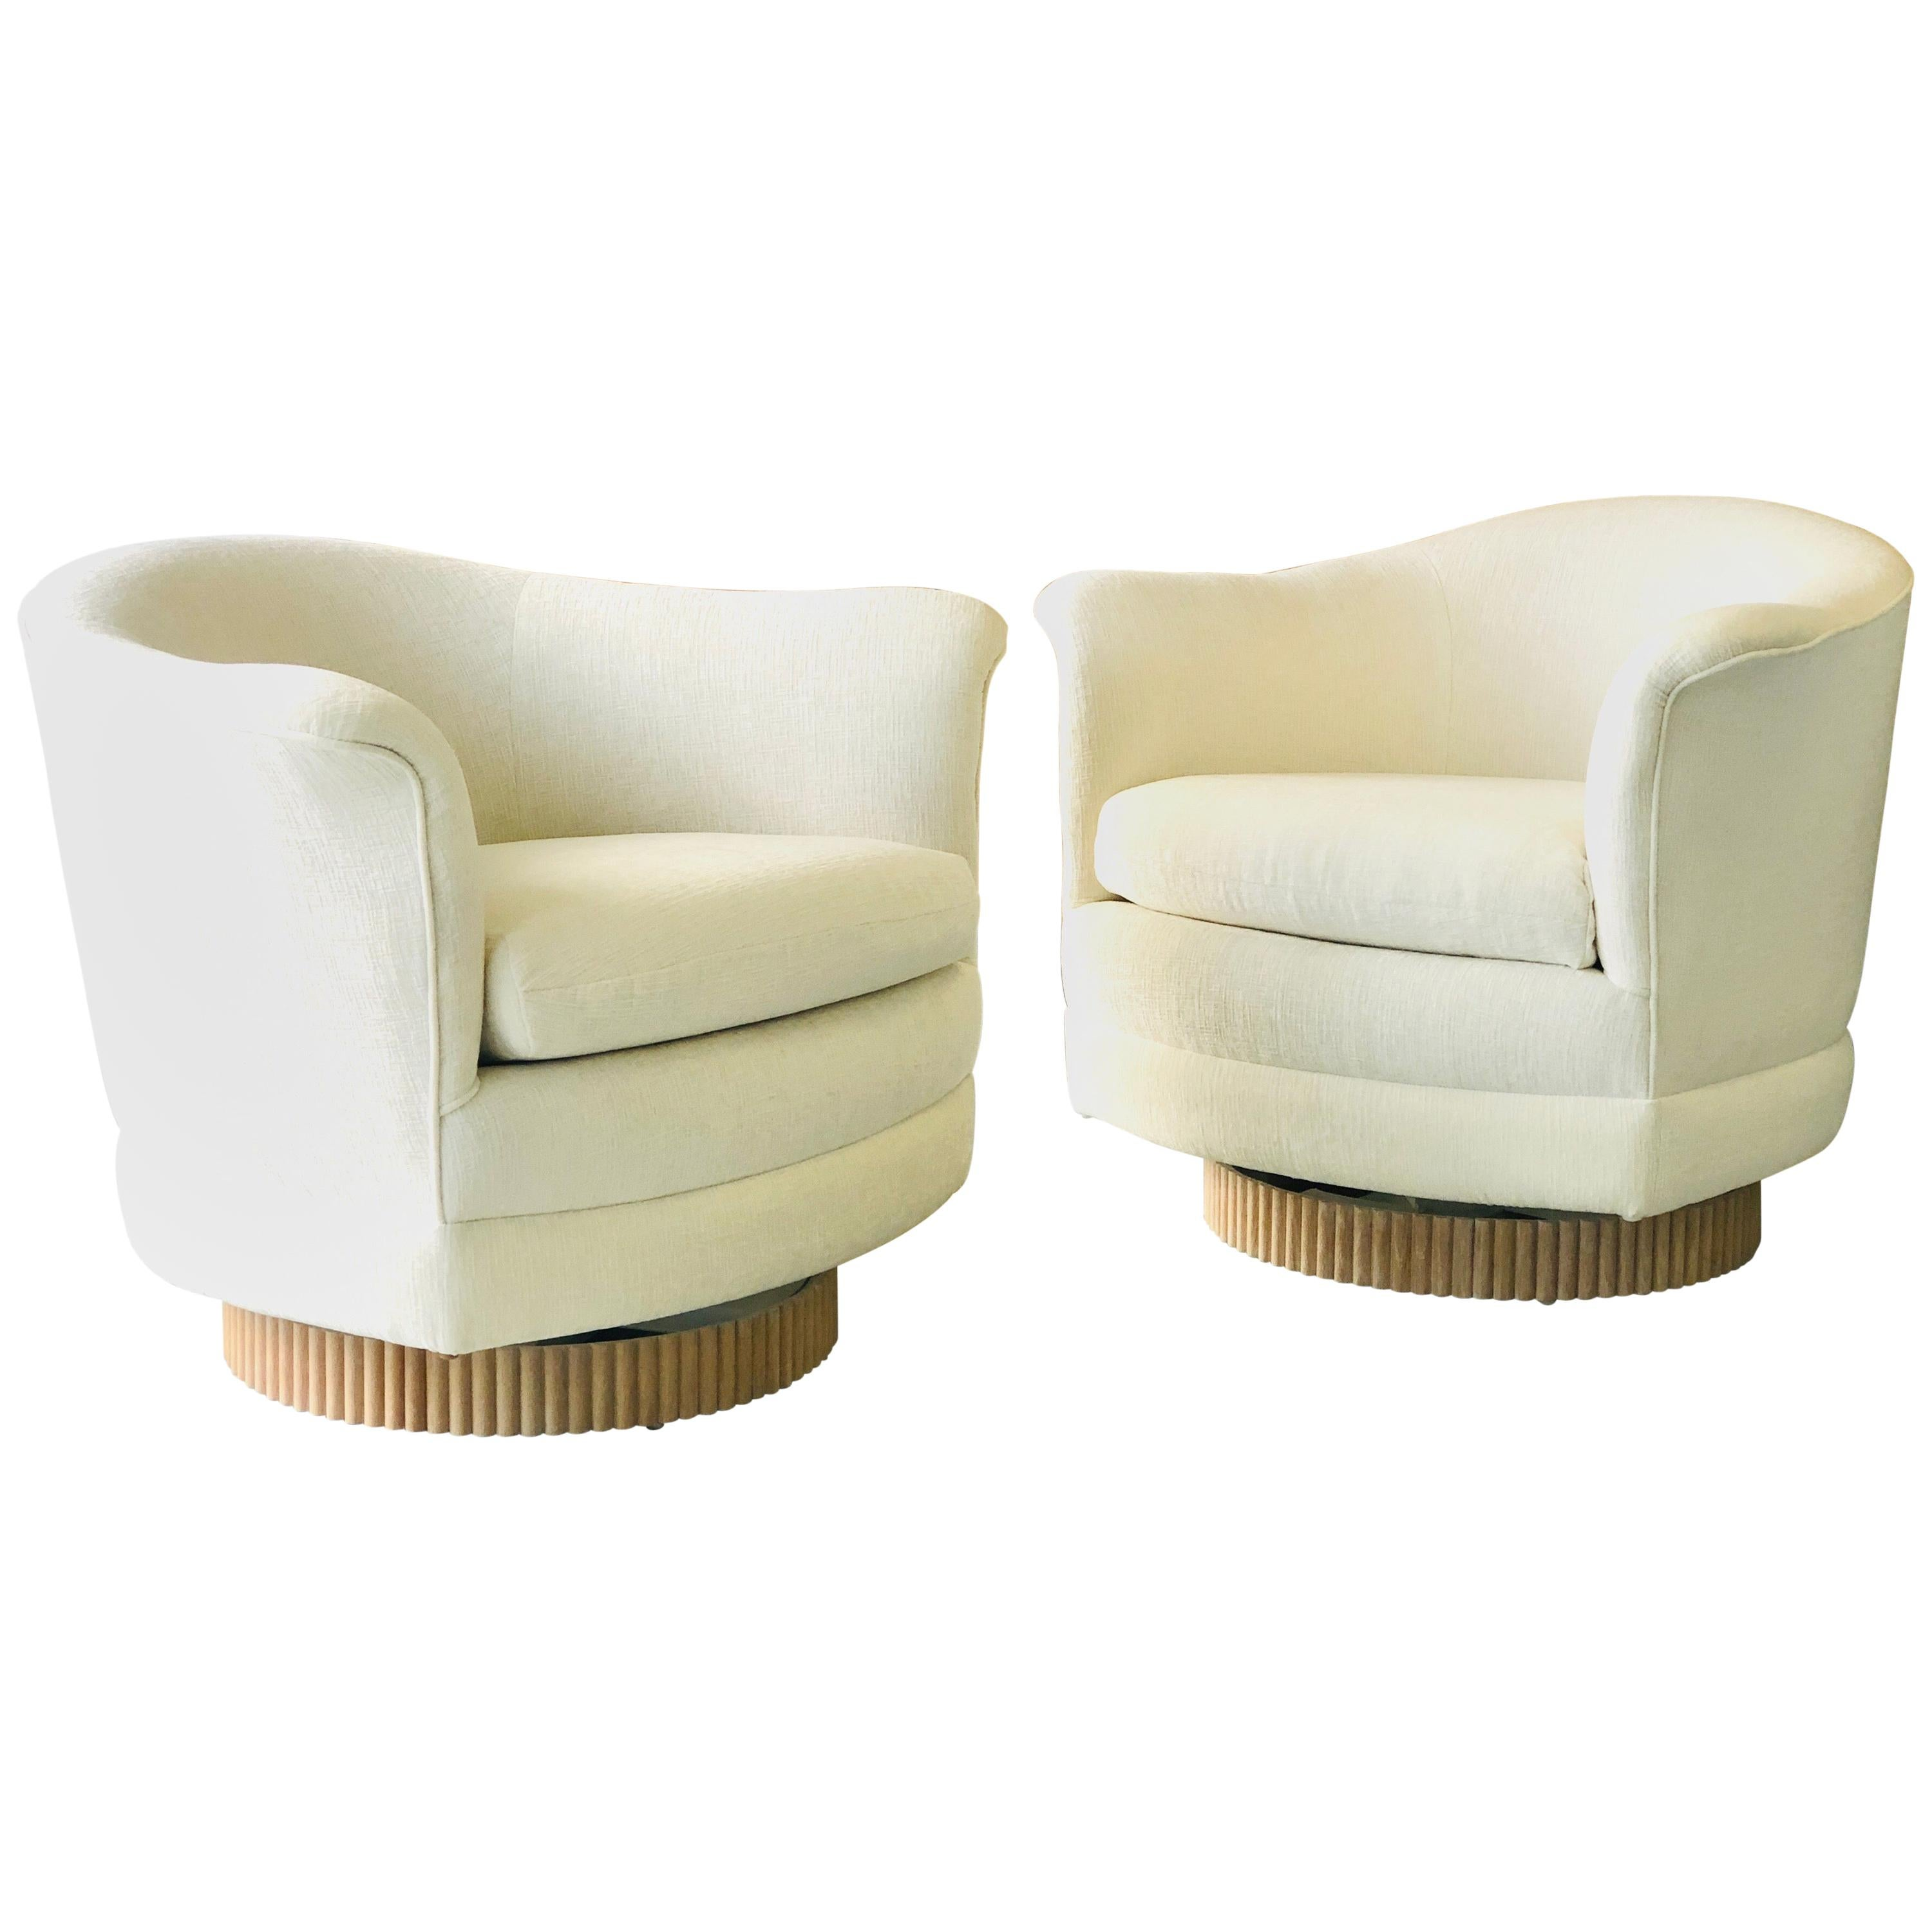 Milo Baughman for Thayer Coggin Swivel and Rocking Lounge Chairs, Oak Bases